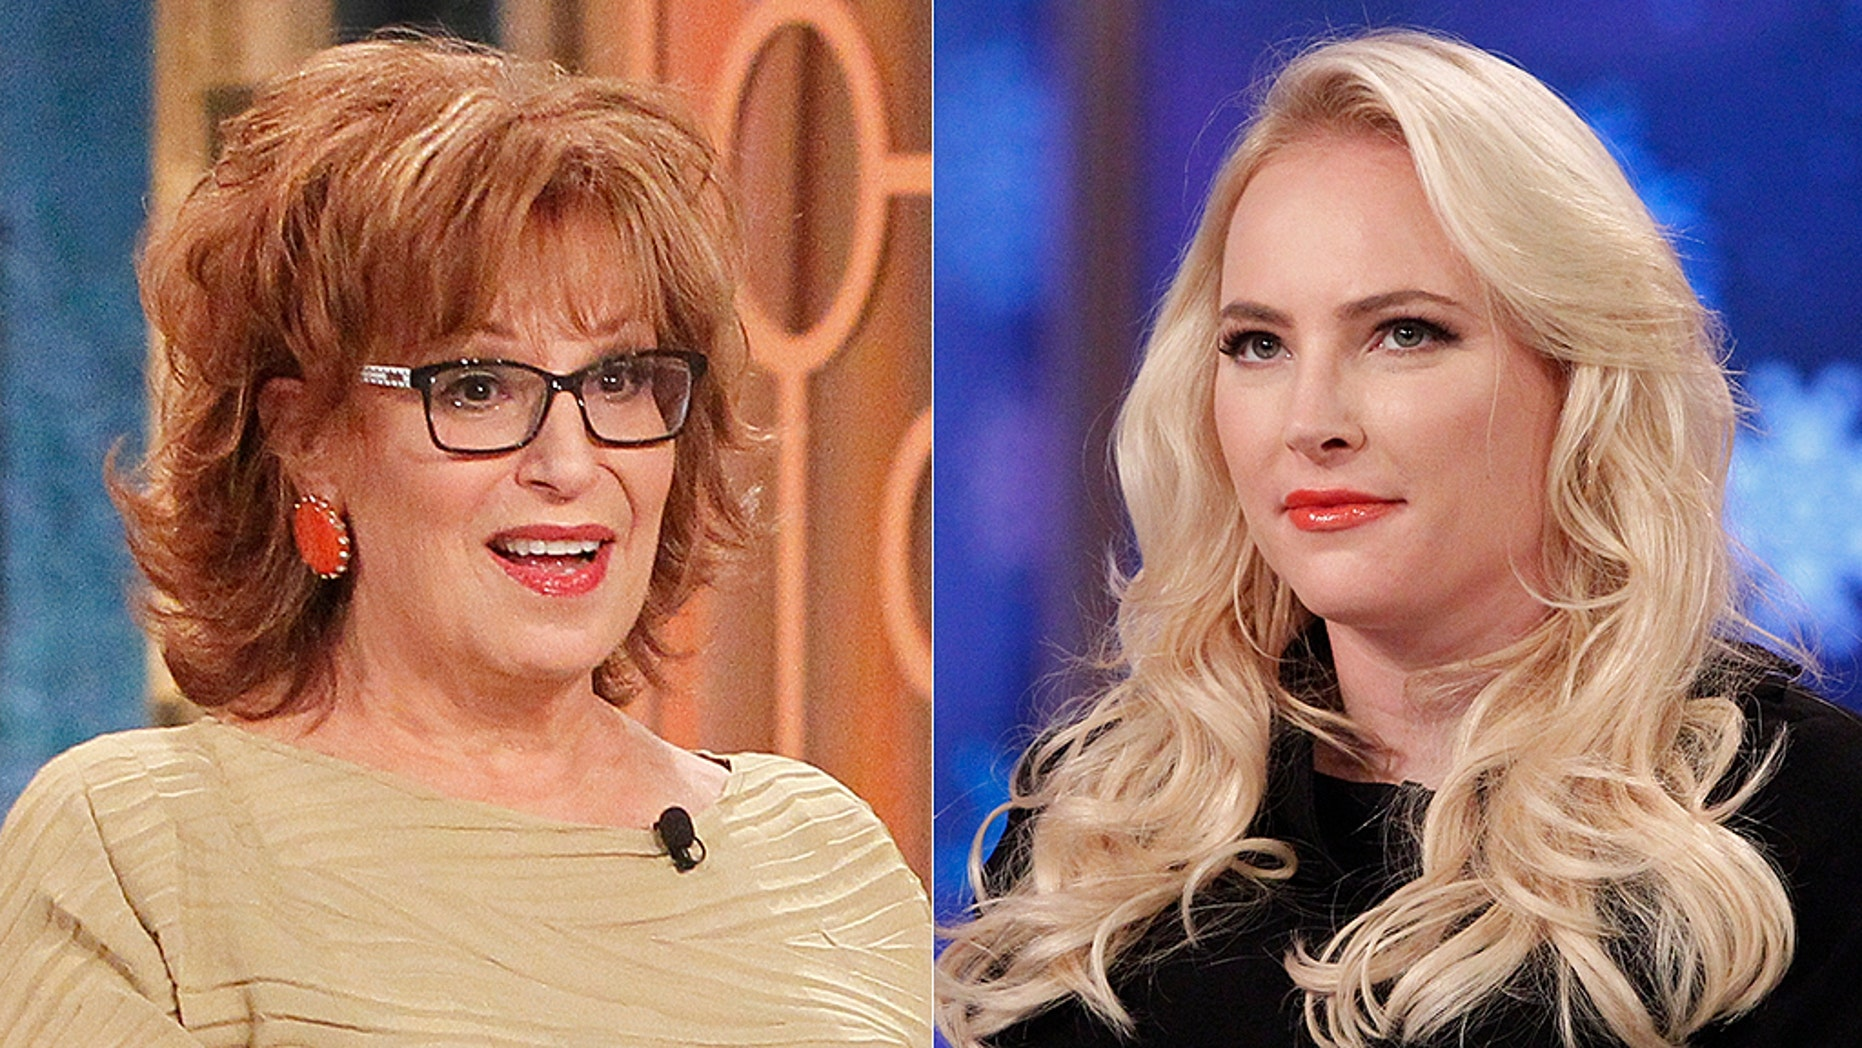 The View host Joy Behar accused colleague Meghan McCain of hissy fit Monday